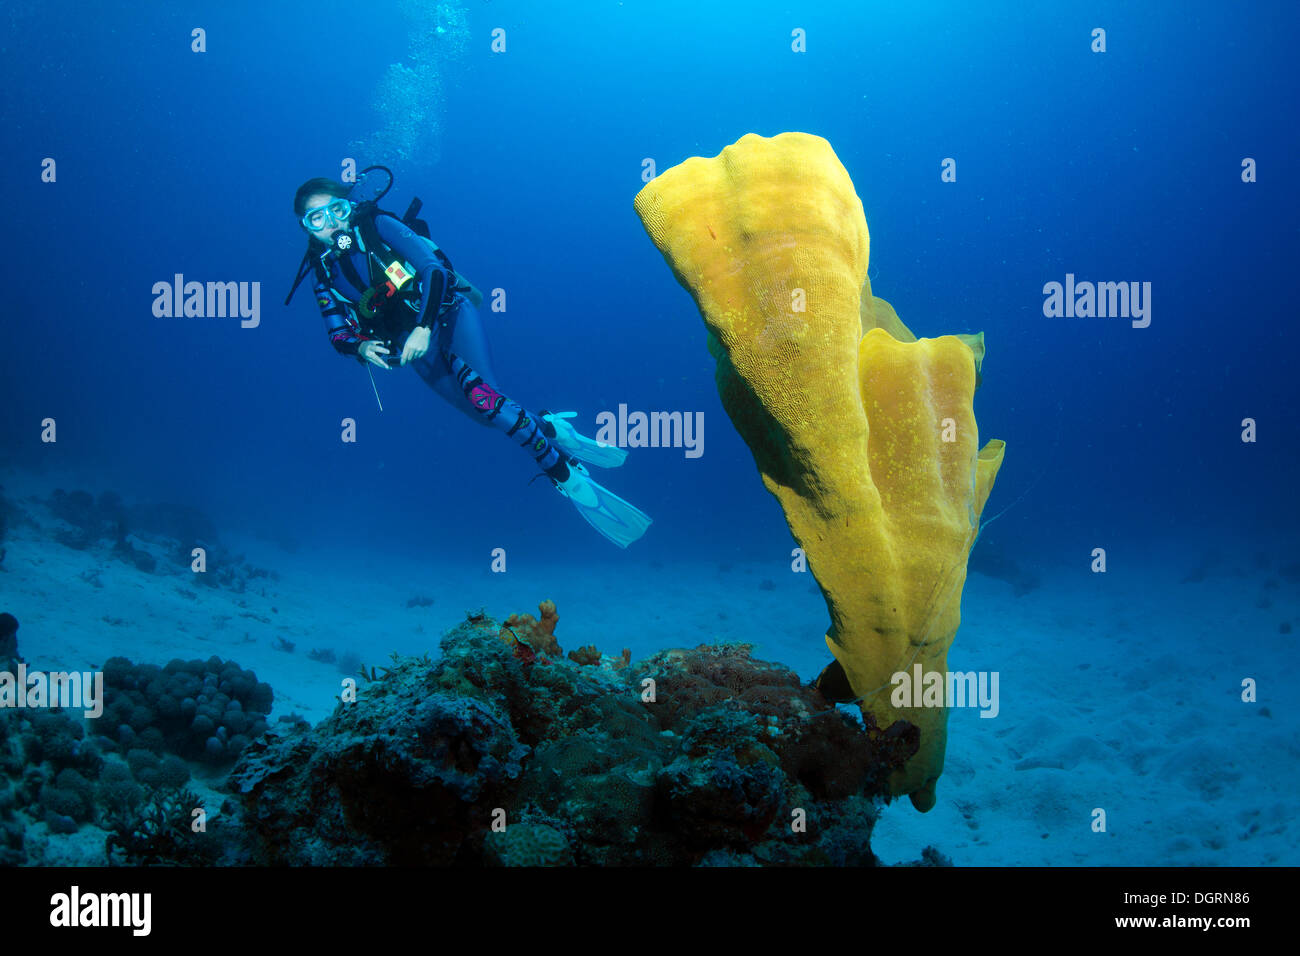 Scuba diver in a coral reef, South China Sea, Minuit, -, Mimaropa, Philippines - Stock Image